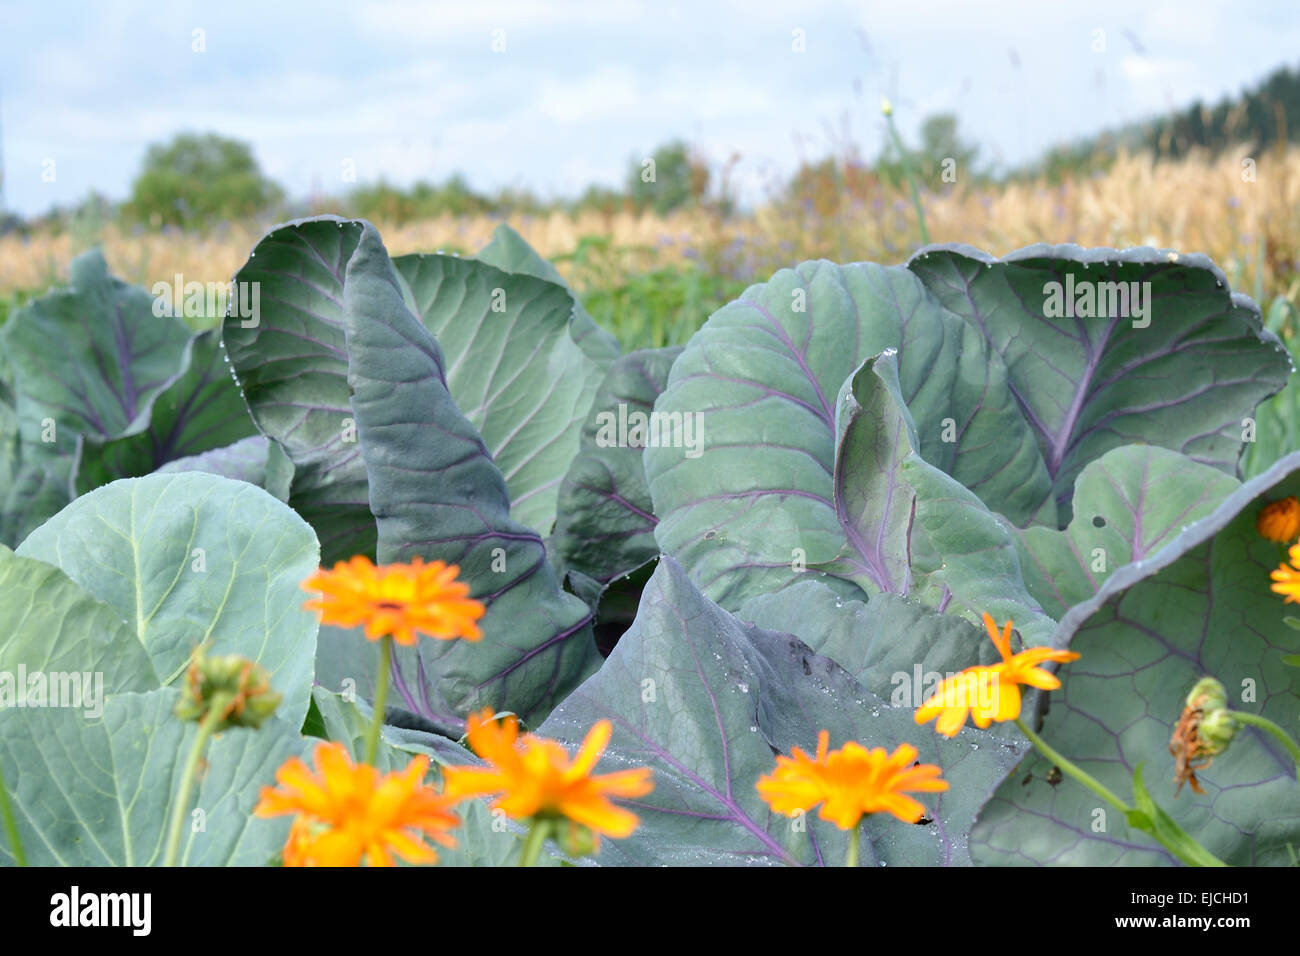 White herb on field - Stock Image